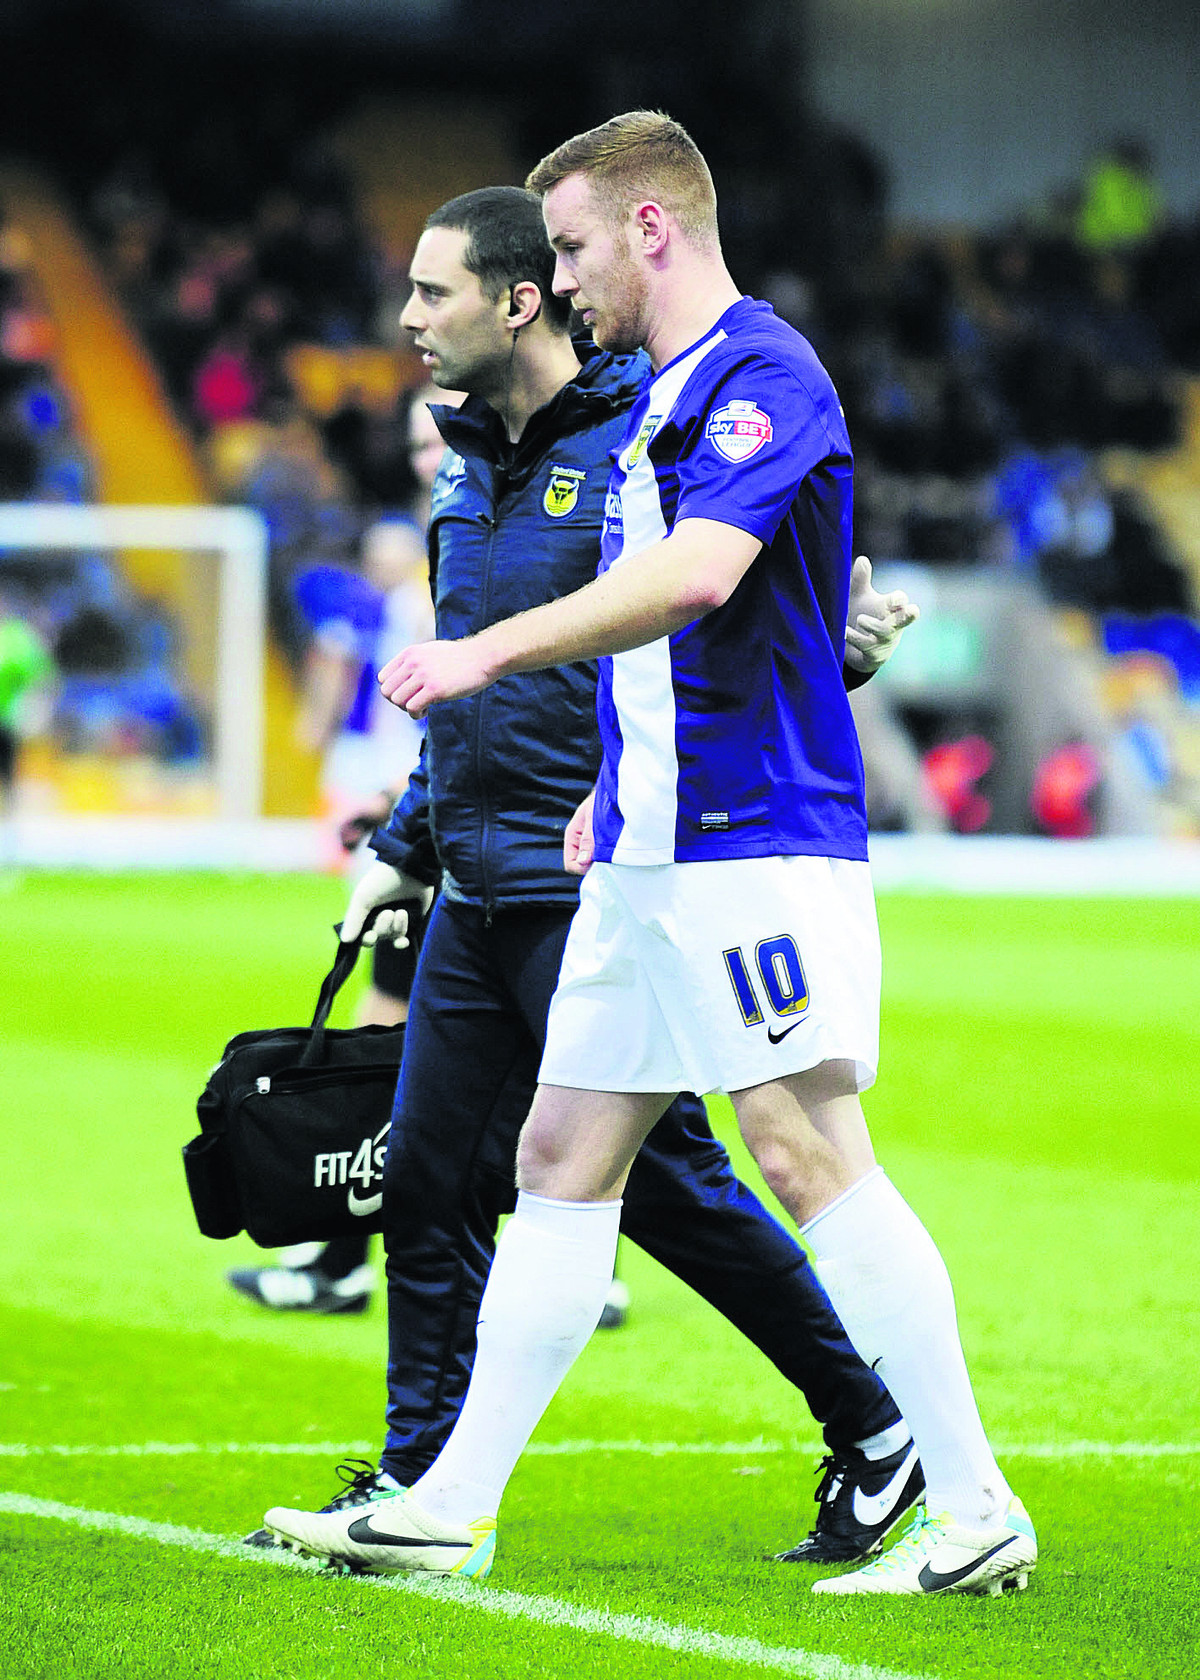 Deane Smalley limps off at Mansfield. The striker made his comeback against Gateshead on Thursday, but will be involved against Wrexham on Monday without being fully fit